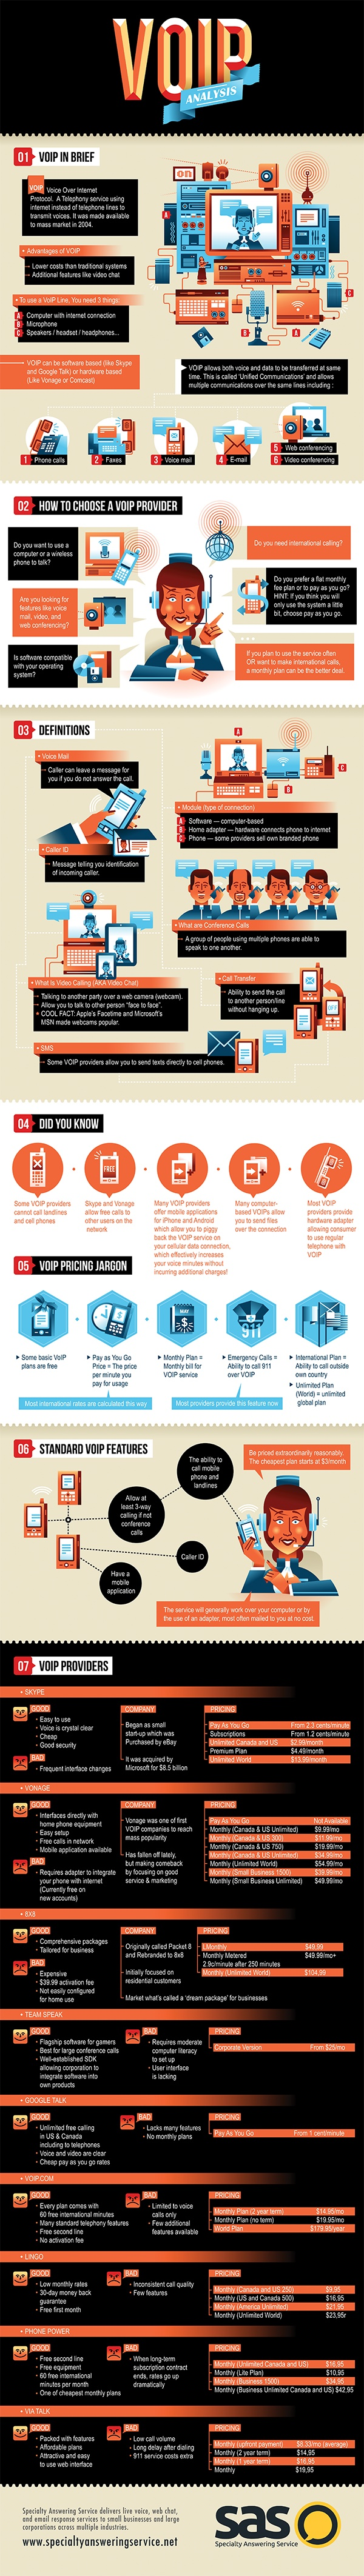 COMPARE VOIP PROVIDERS[INFOGRAPHIC]